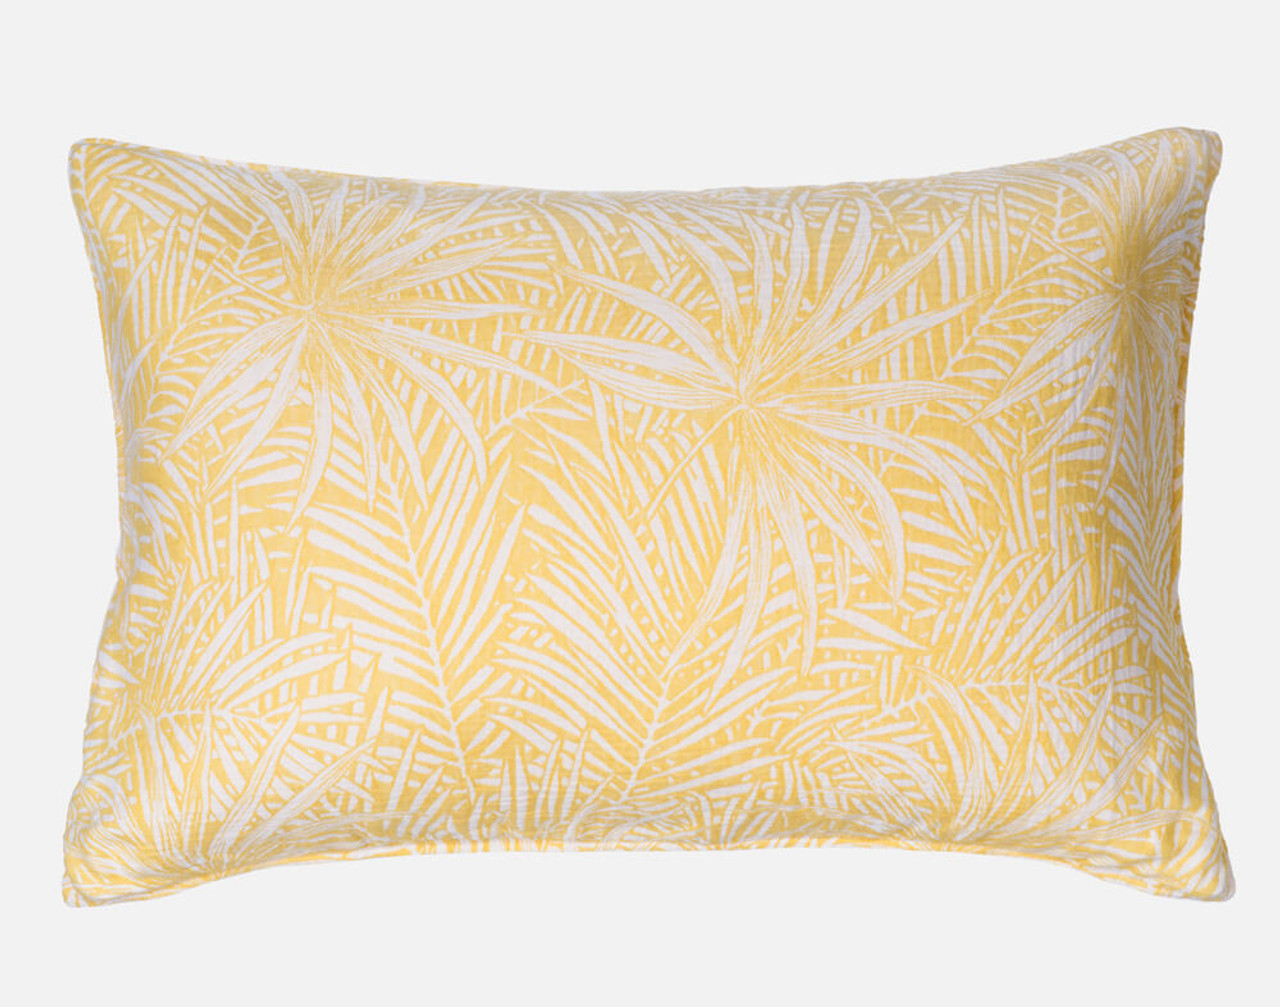 Moorea Pillow Sham features the same bright yellow print as the duvet cover.